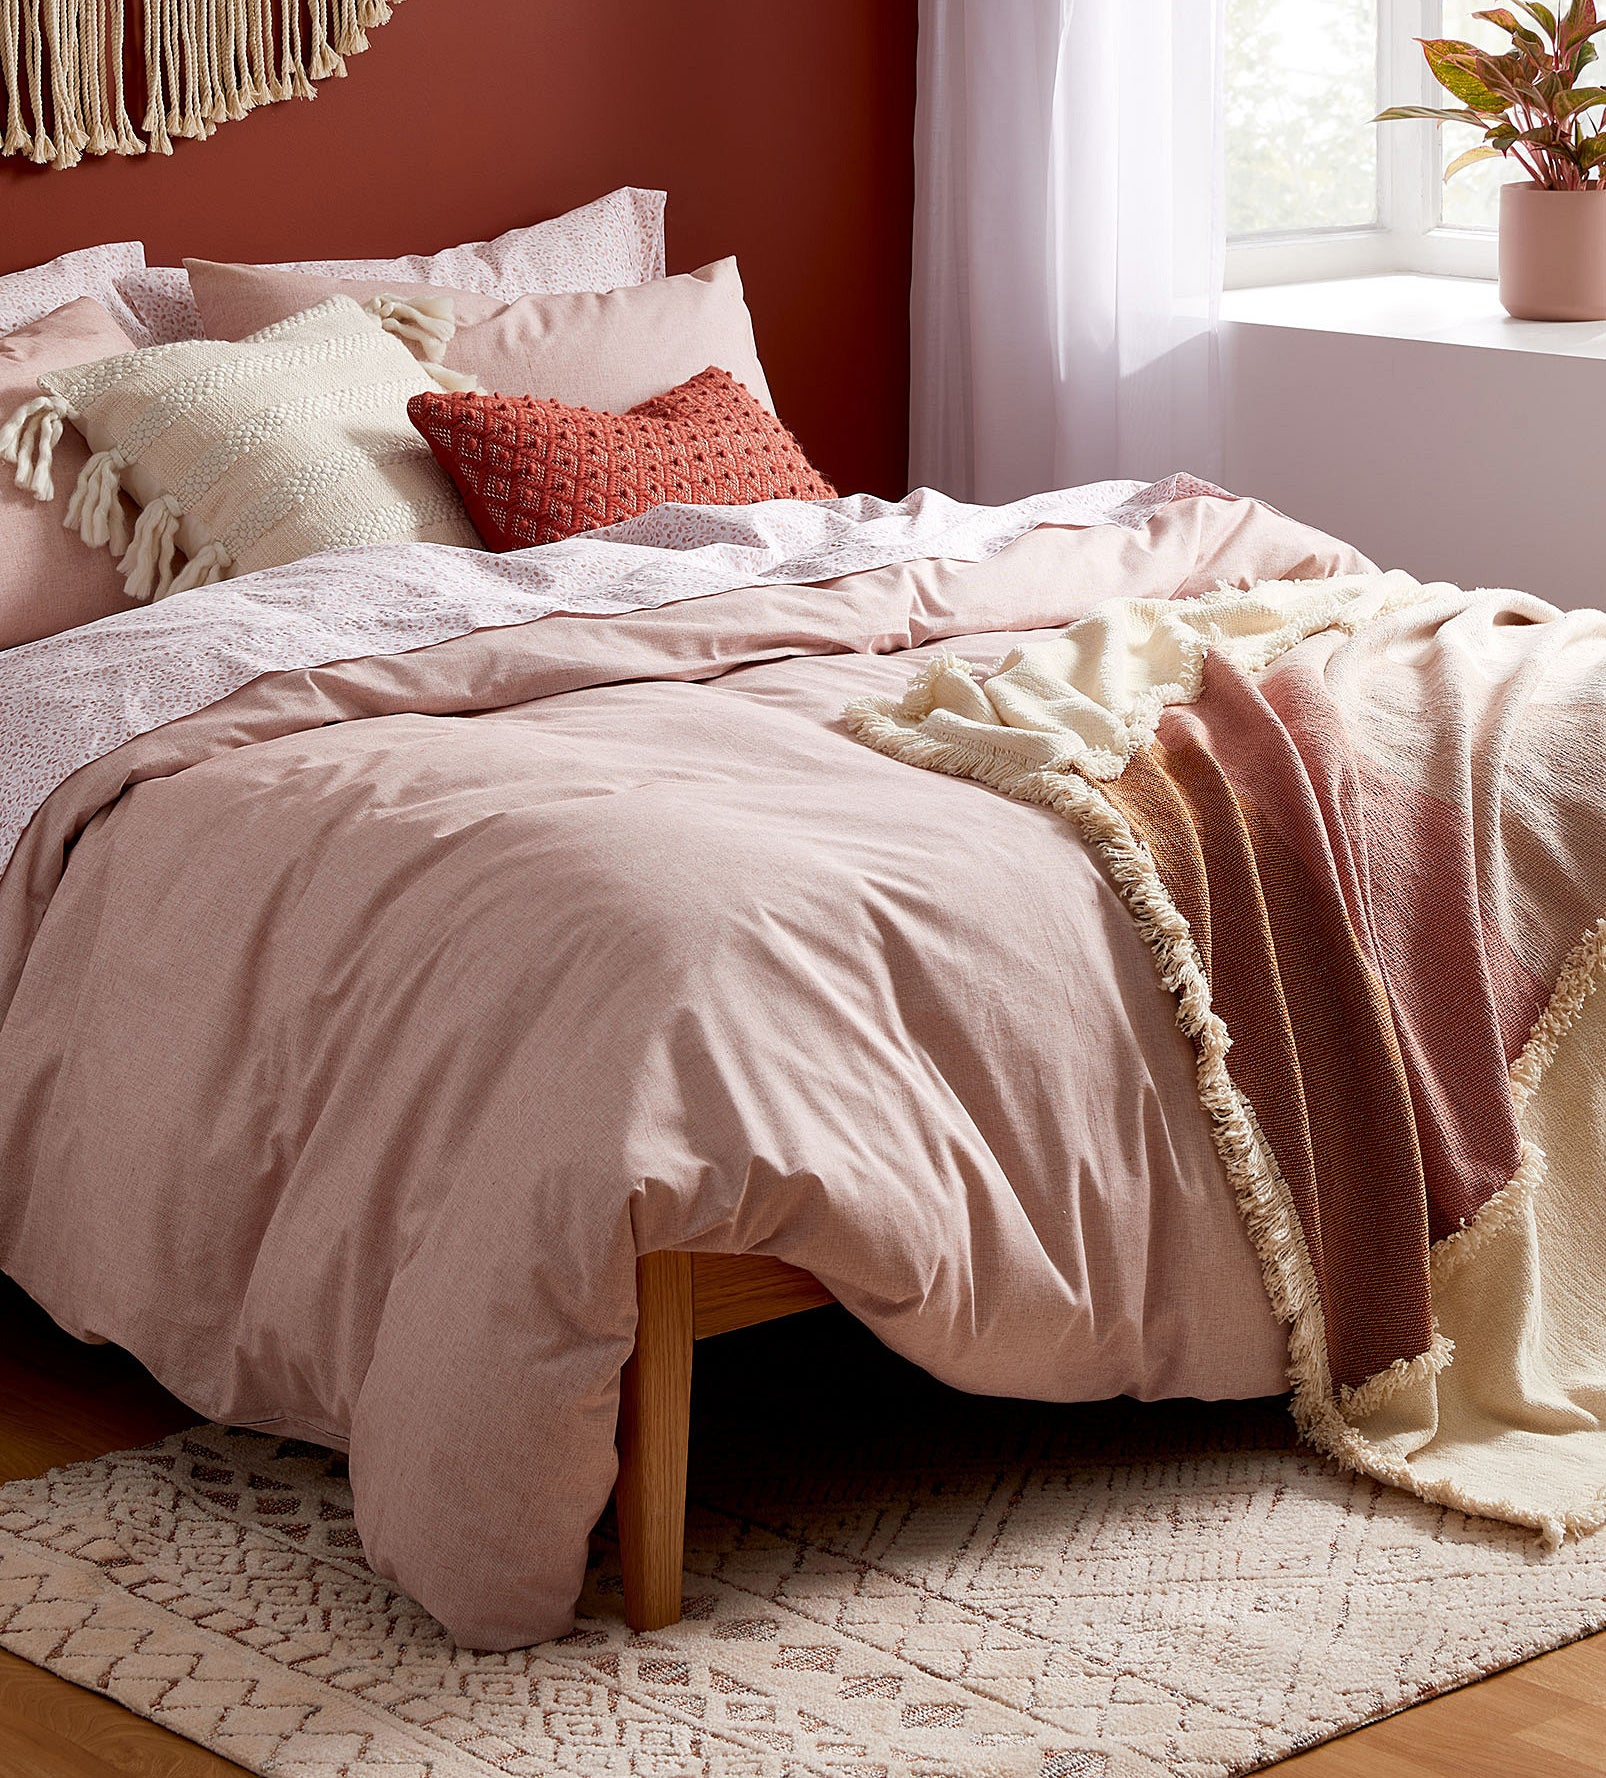 A comfy bed with bedding drooping over it stylishly